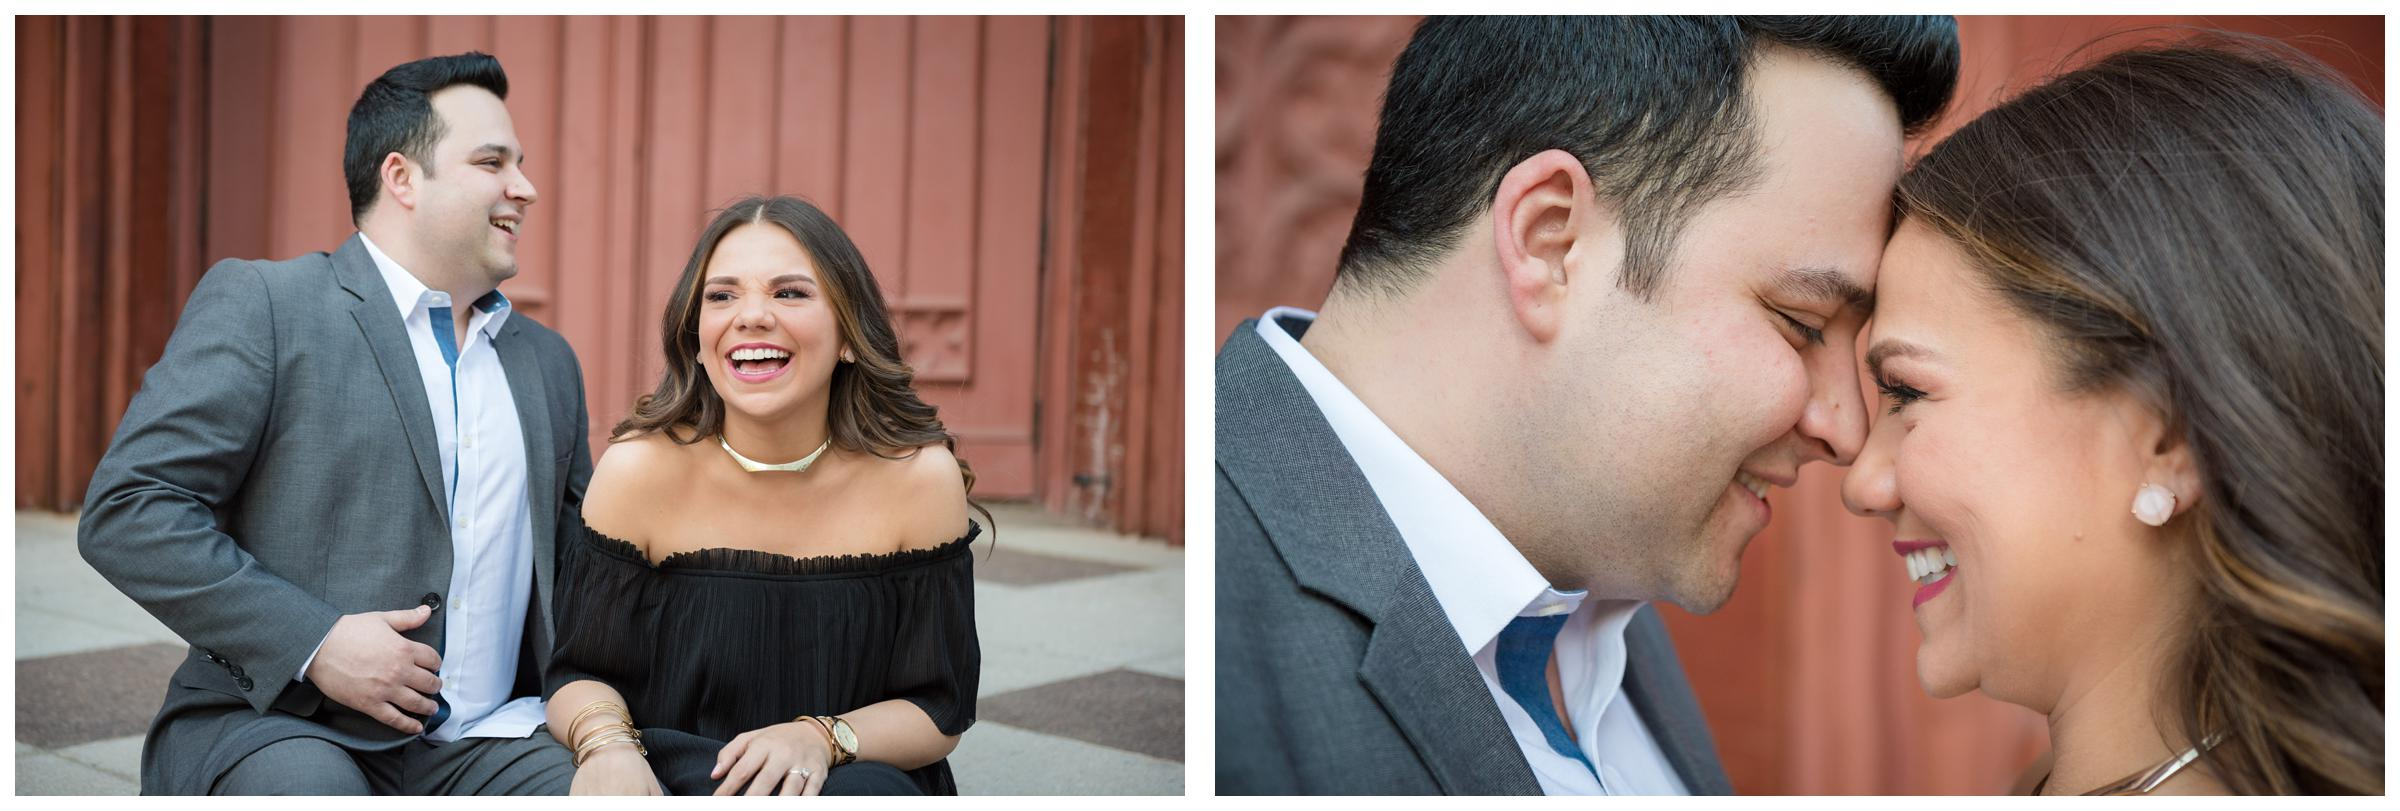 engagement photos in front of red church in downtown Washington, D.C.